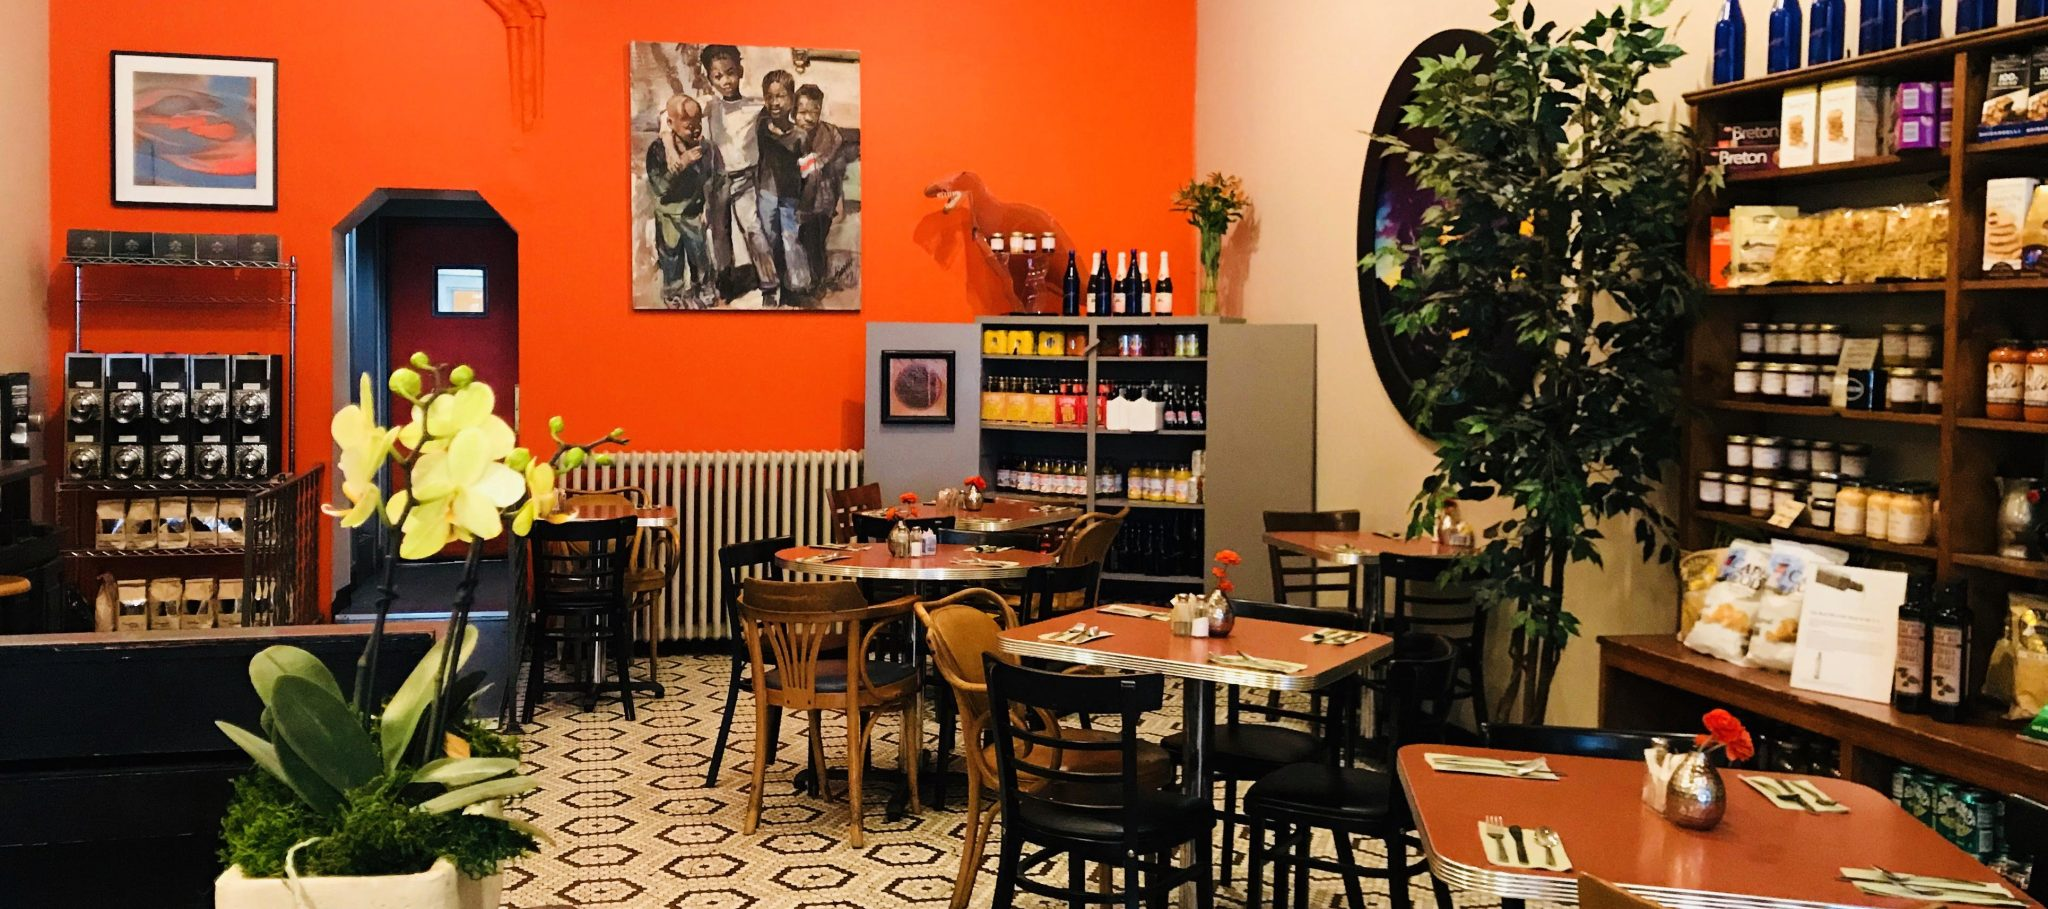 The Interior of The Cascades Deli Restaurant and Caterer in Hudson, NY